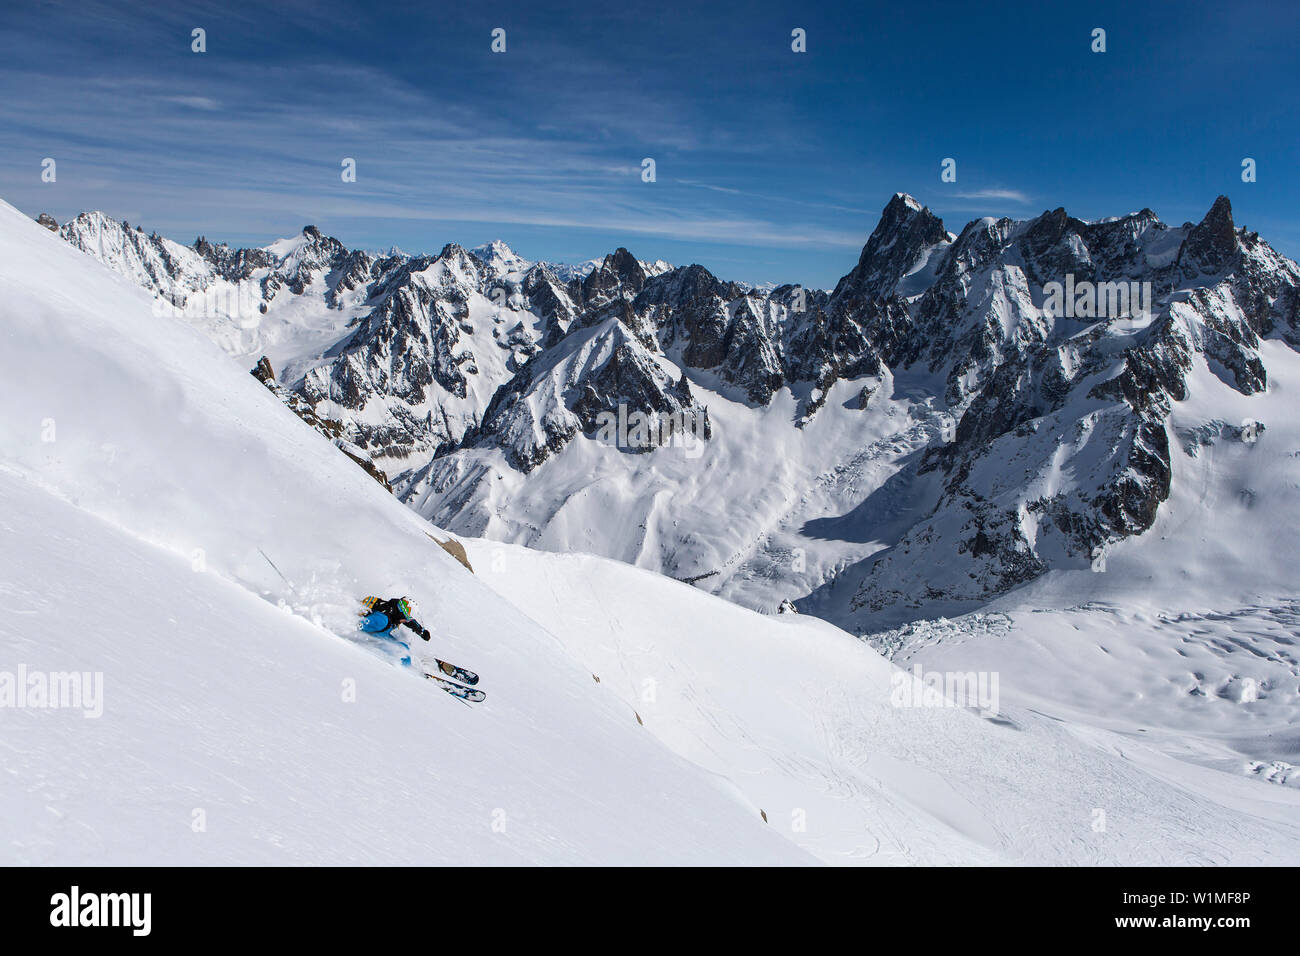 Skier in Vallee Blanche with Grandes Jorasses 4208 m, Aiguille du Midi 3842 m, Chamonix, France - Stock Image